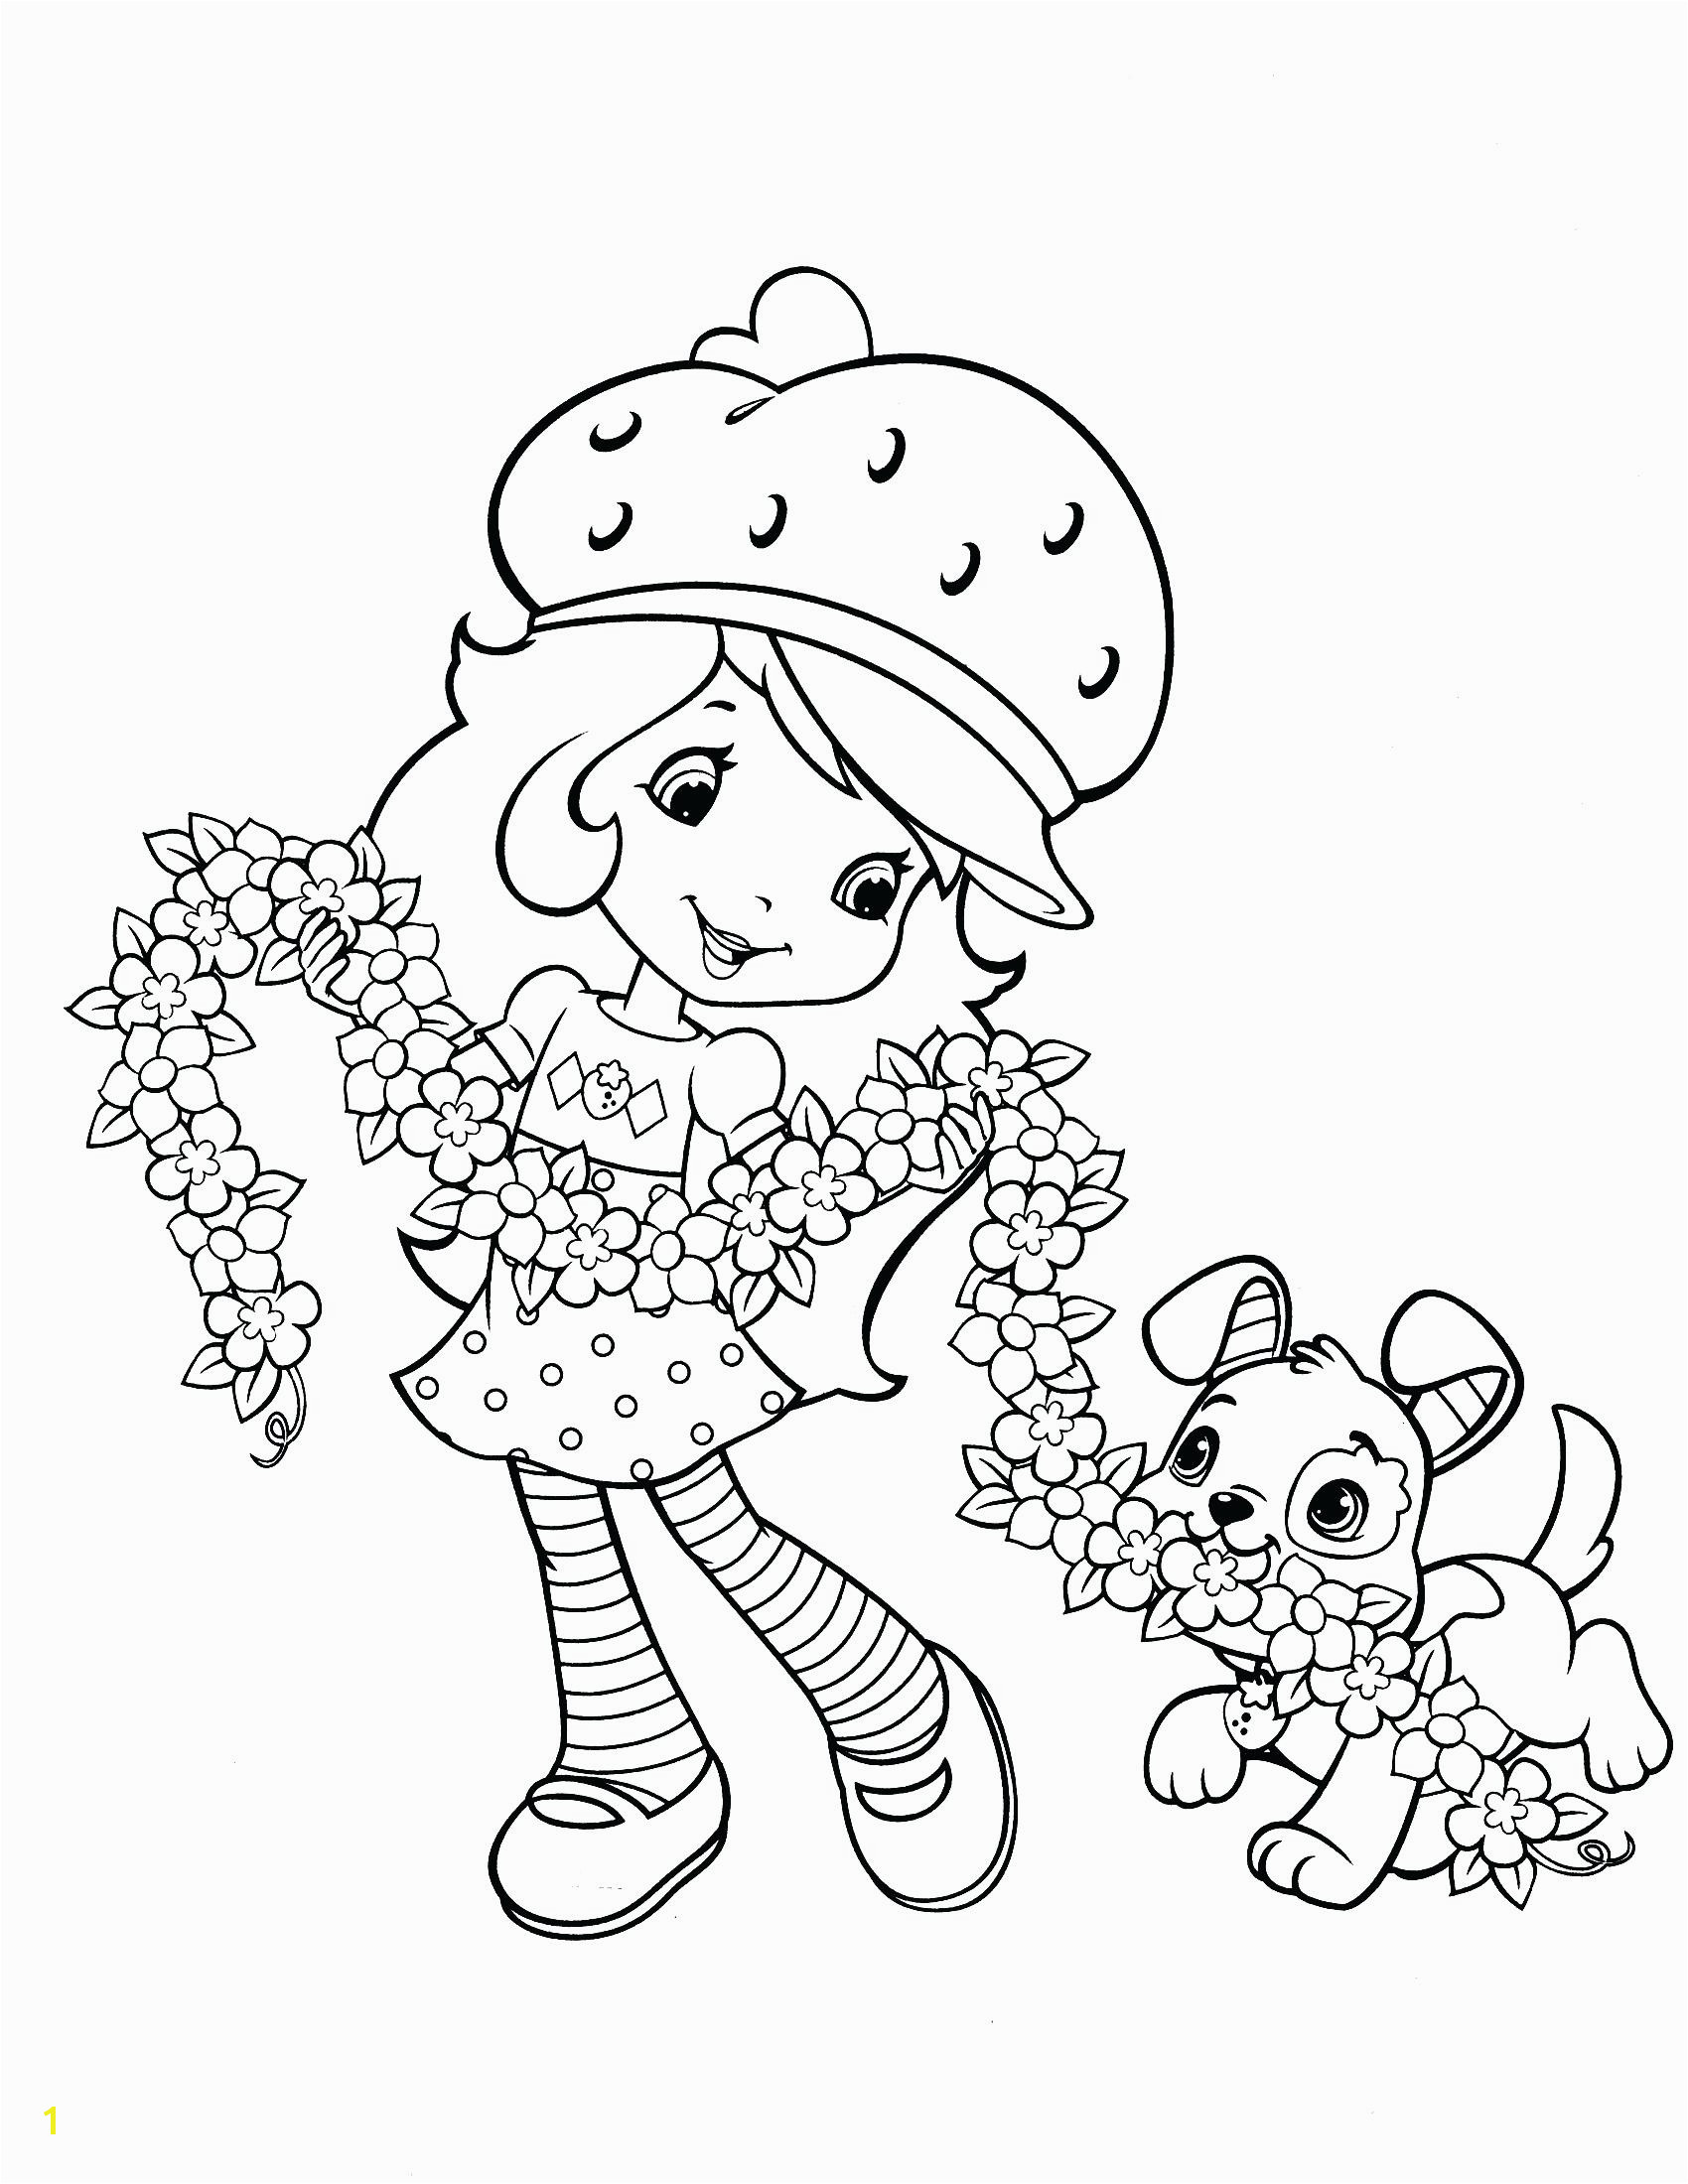 Strawberry Shortcake Doll Coloring Pages Strawberry Shortcake Amazon Pack toys Games Vintage Strawberry